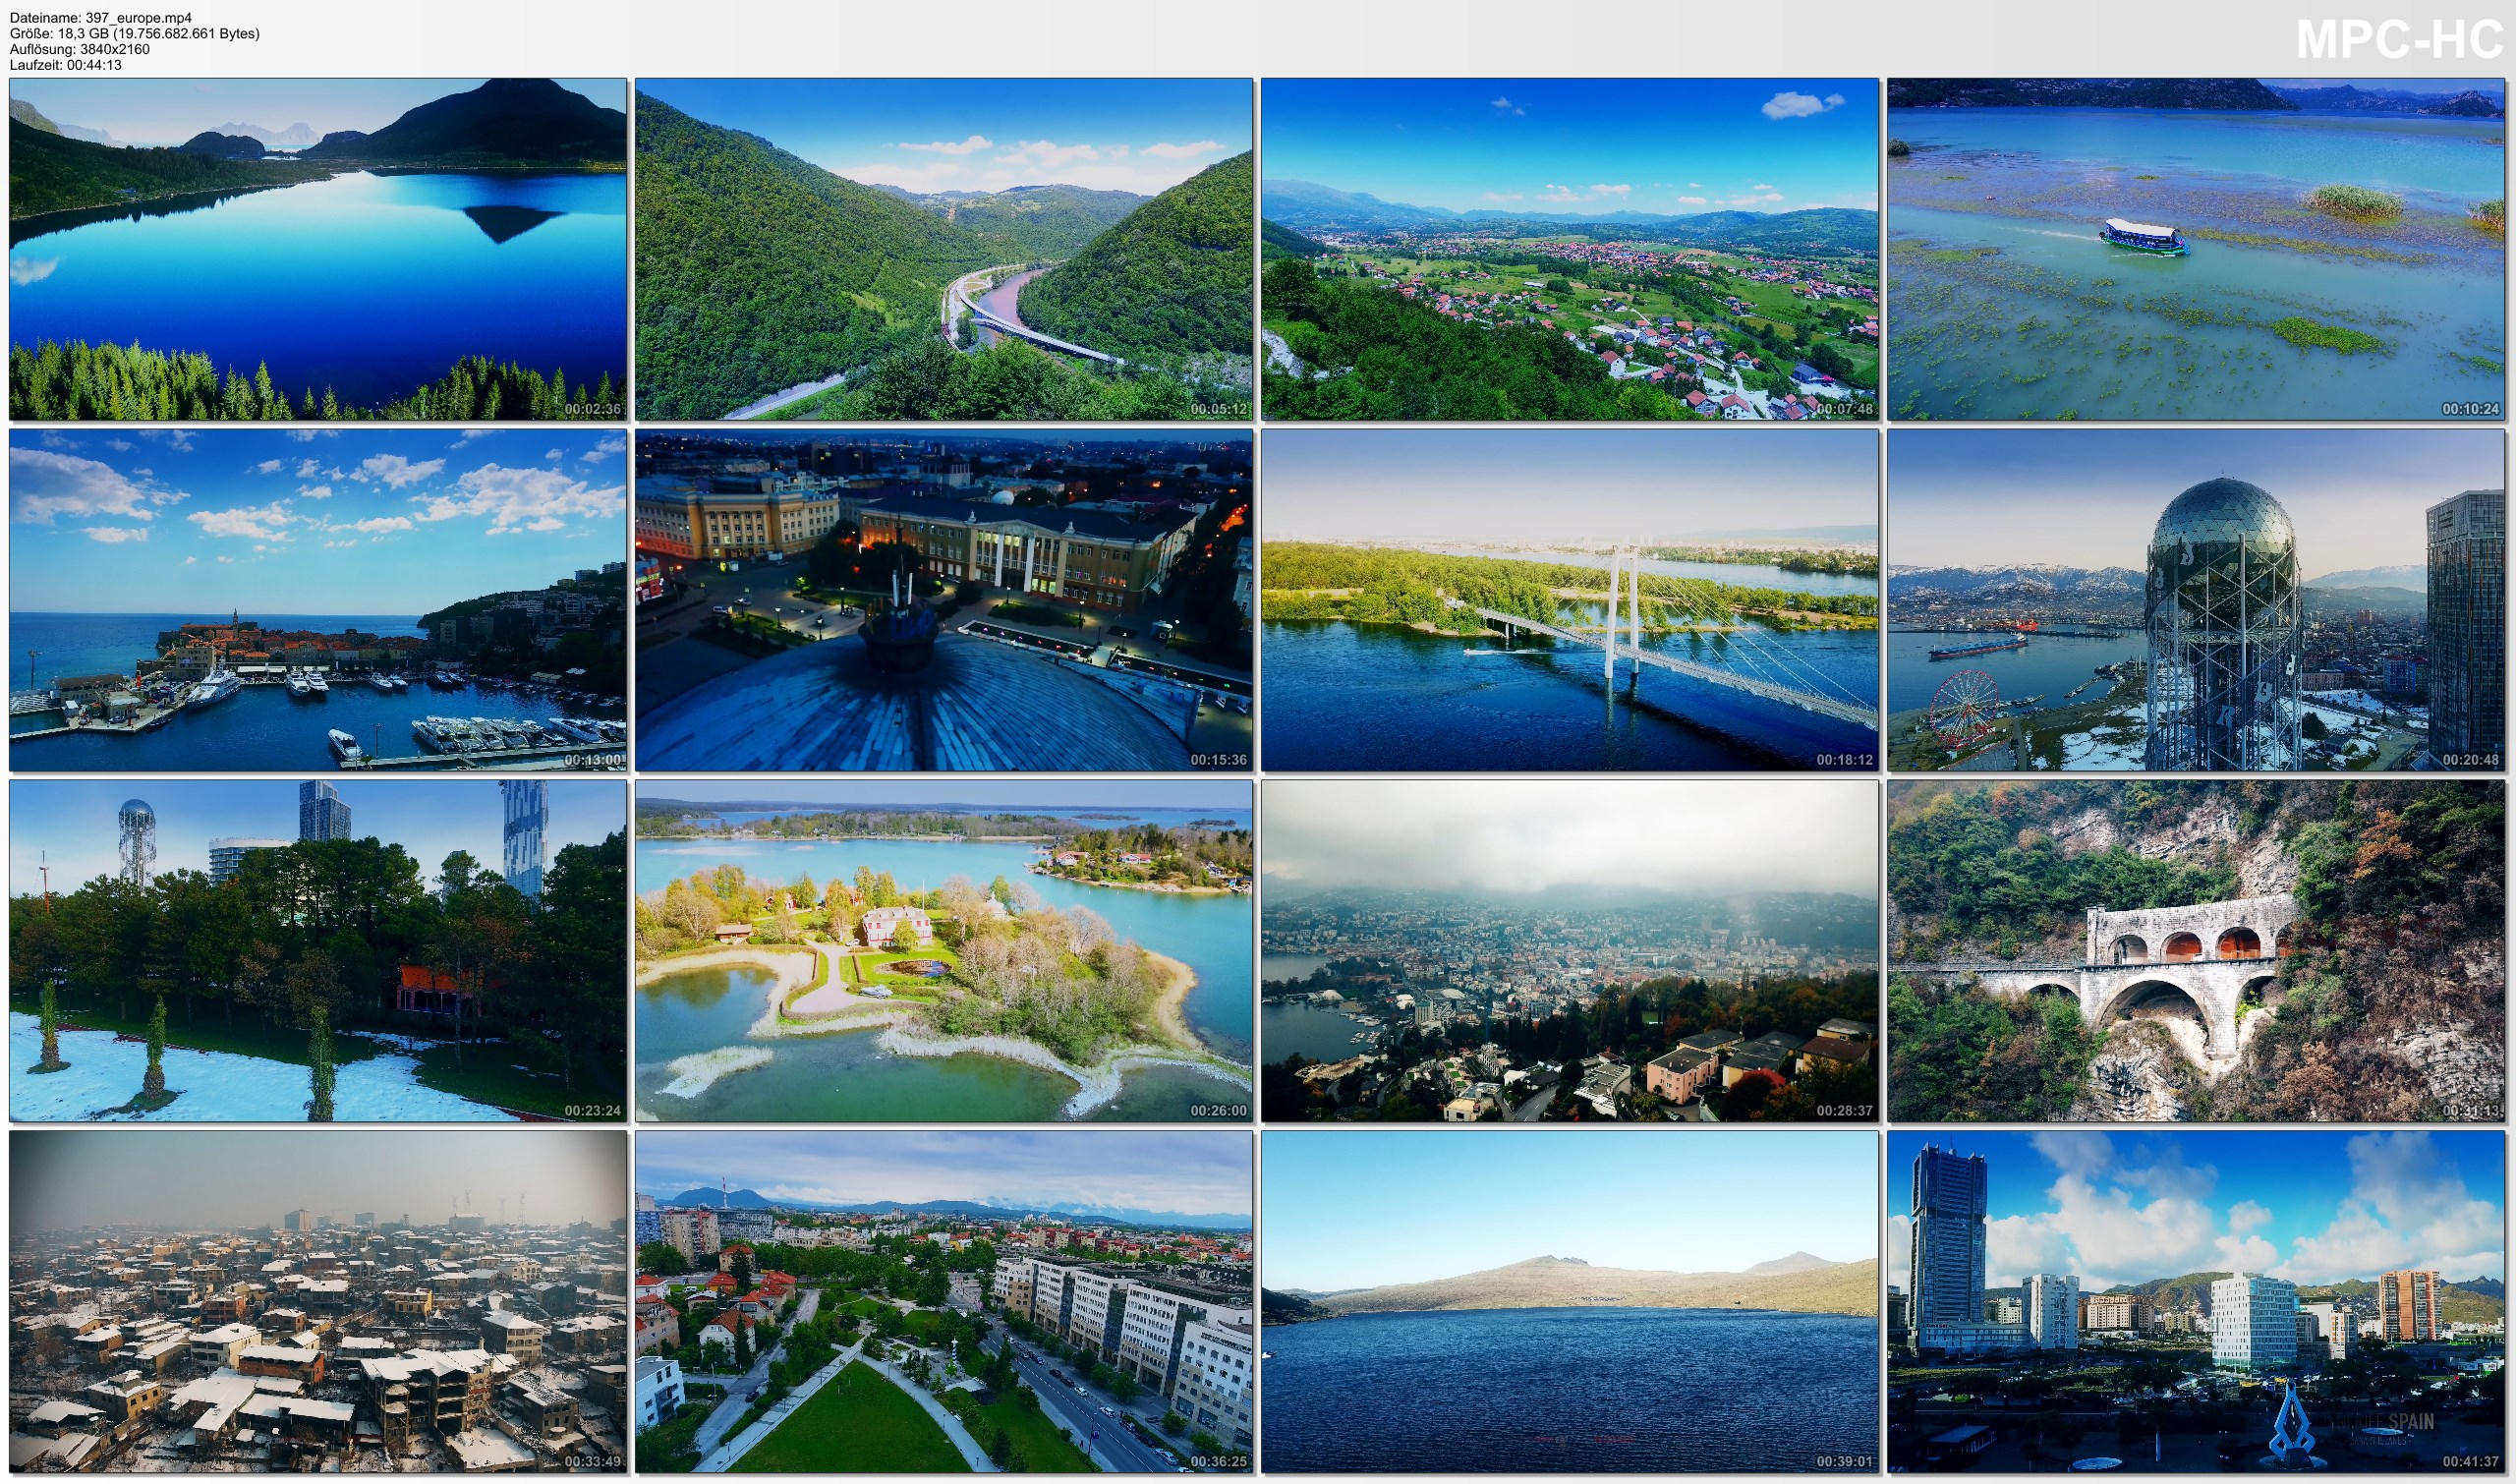 Drone Pictures from Video 【4K】Drone Footage | The Beauty of EUROPE in 45 Minutes 2019 | Cinematic Aerial Film